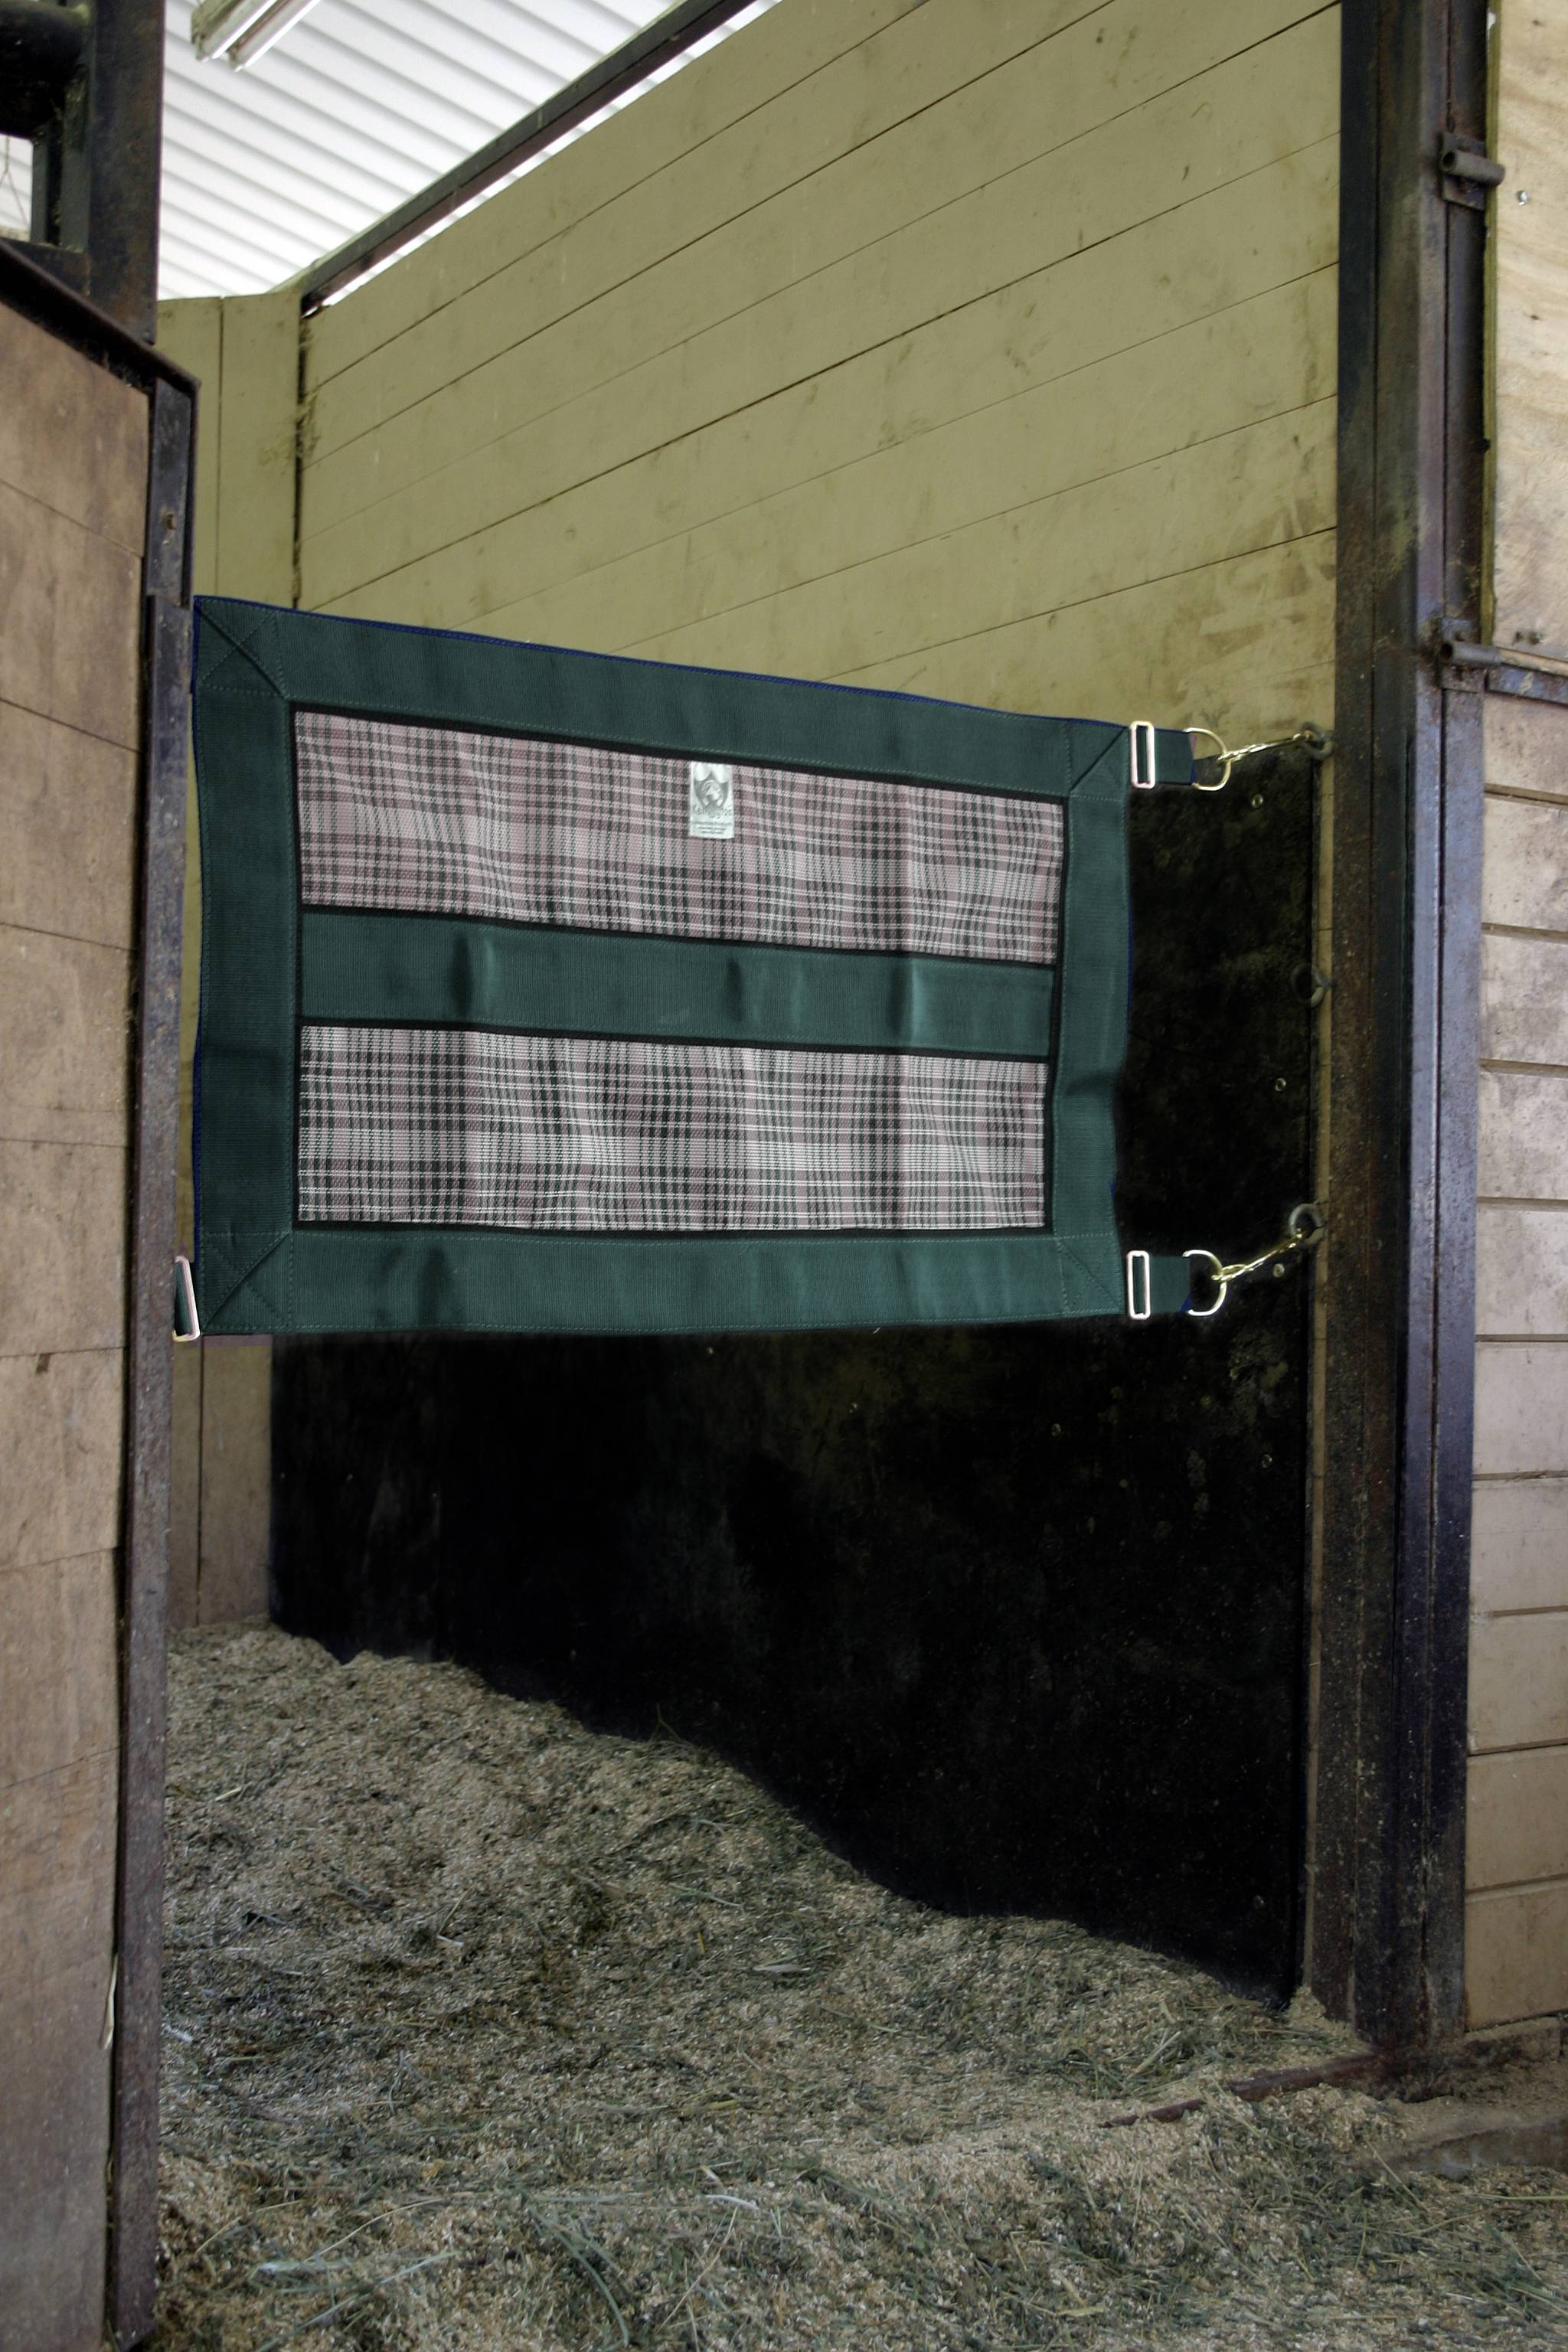 Kensington Stall Guard with Hardware